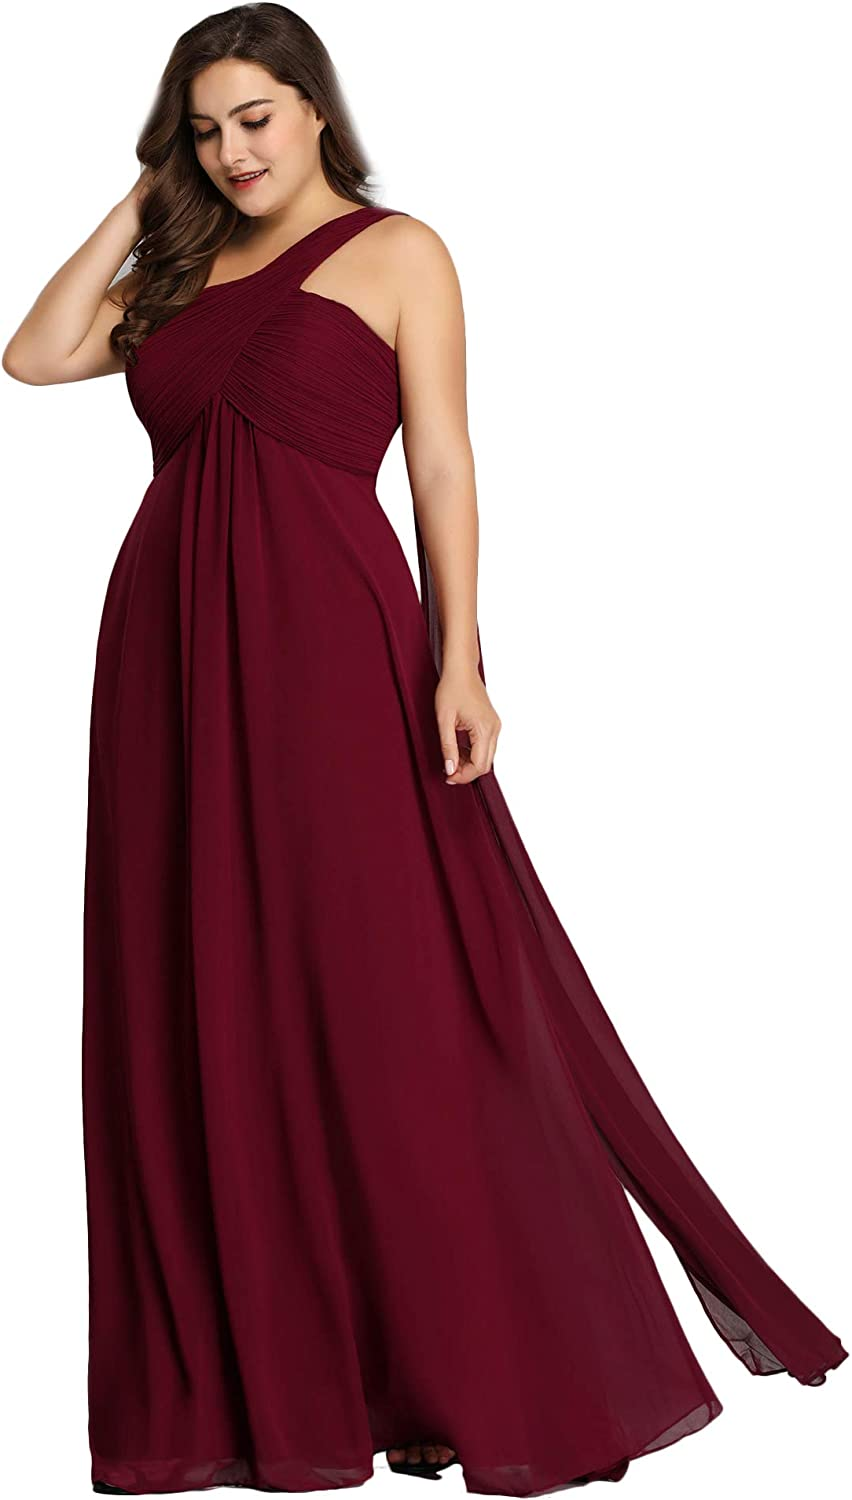 Ever-Pretty Womens Plus Size Popular overseas Free shipping One Shoulder Ruched Chiffon Bridesm